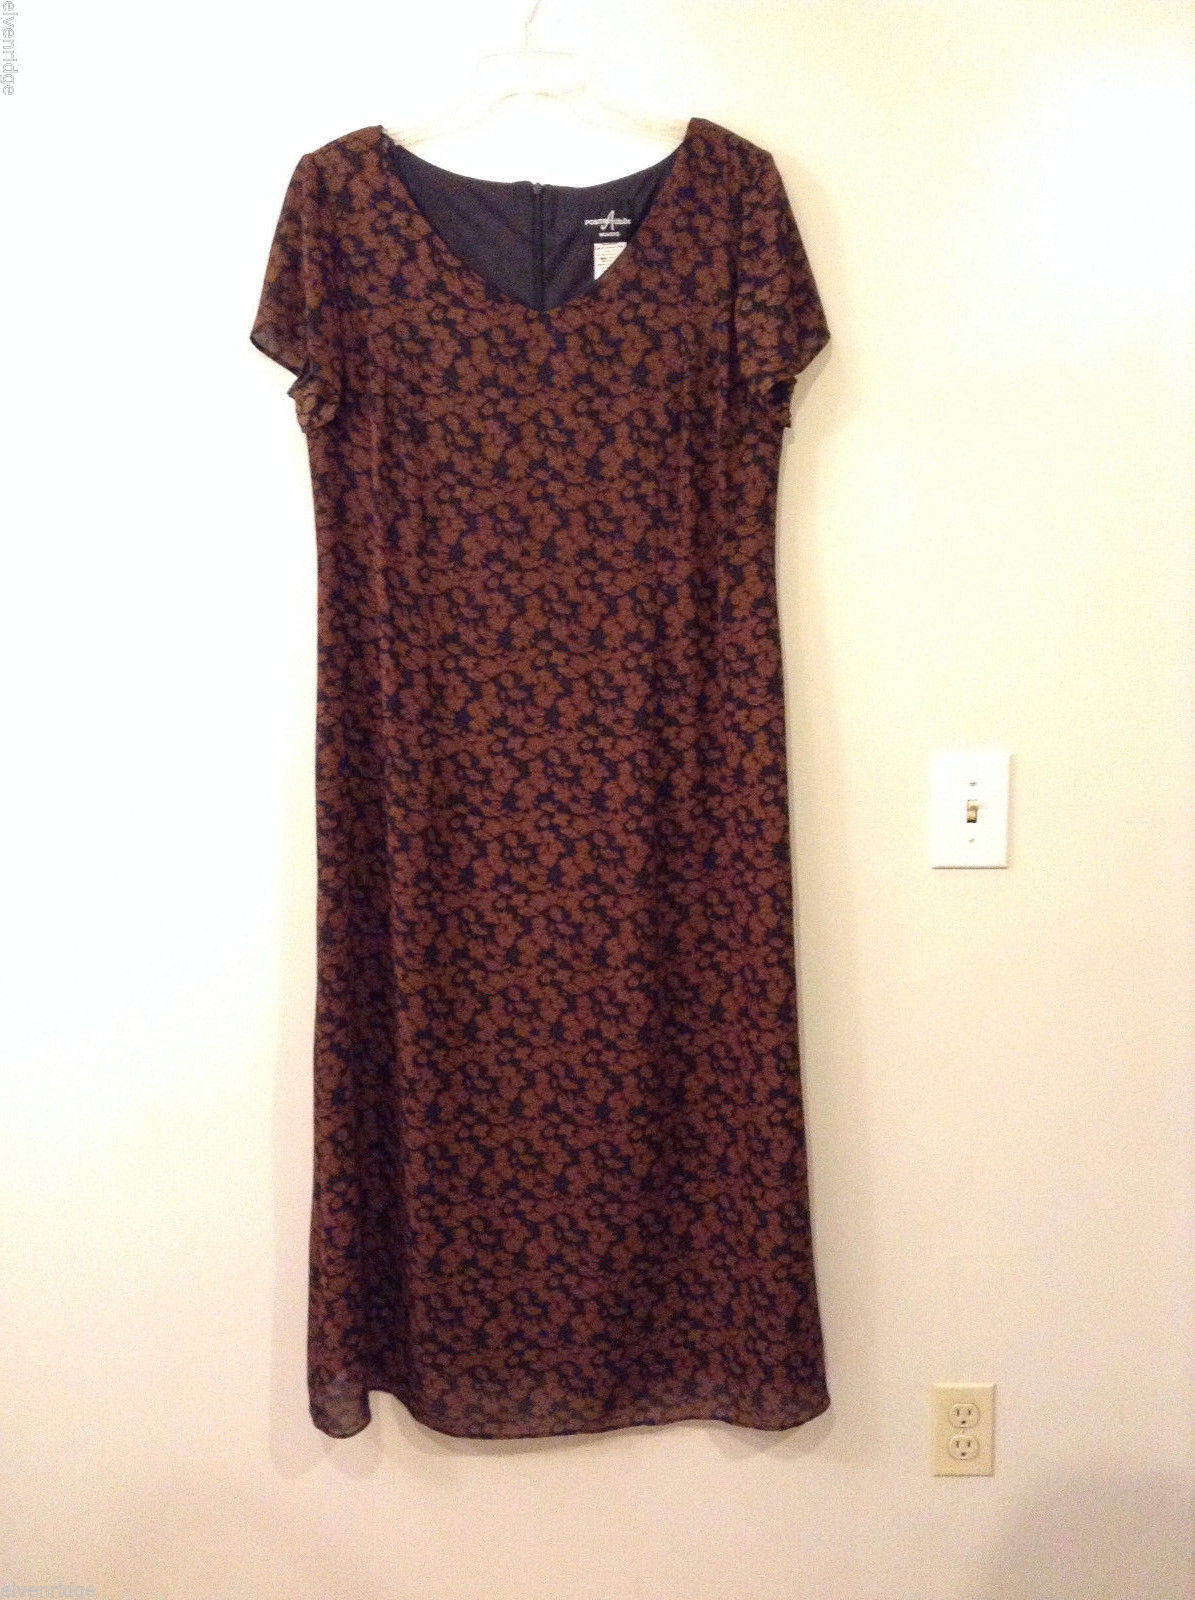 Positive Attitude Black with Brown Flowers V-neck 100% Polyester Dress, size 14